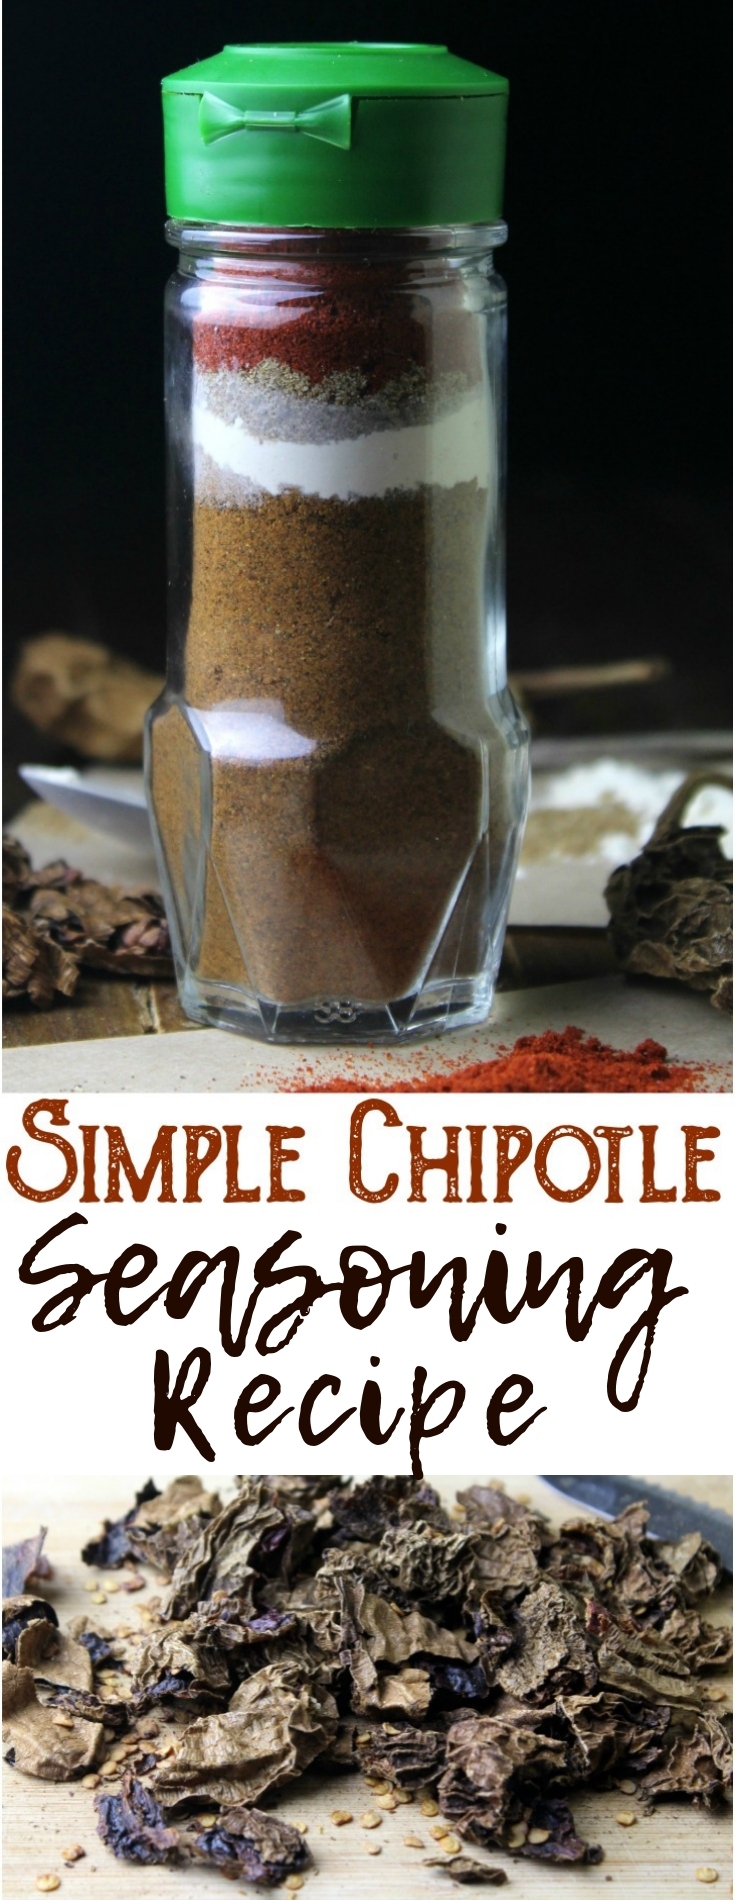 Use this easy and inexpensive homemade chipotle seasoning recipe to add flavor and a smoky heat to all of your favorite foods.